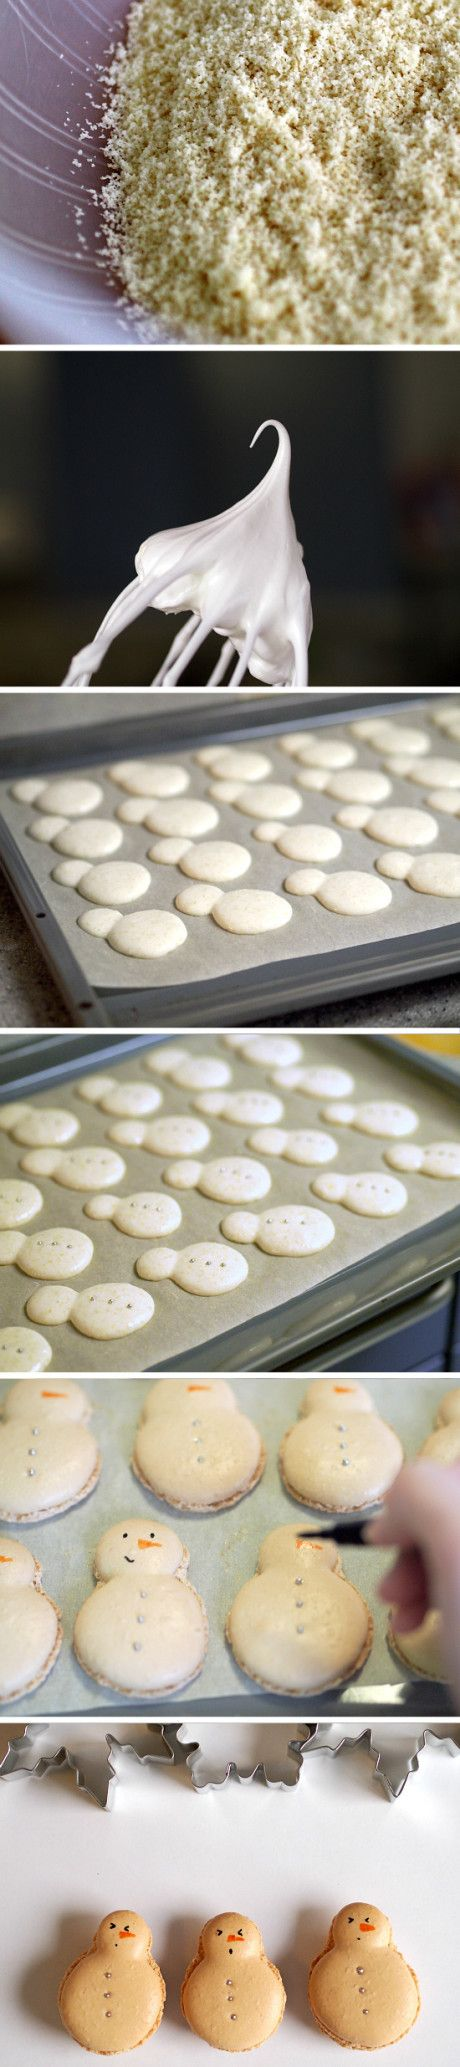 explore mmmmm macarons french macarons and more snowman macaroons so ...